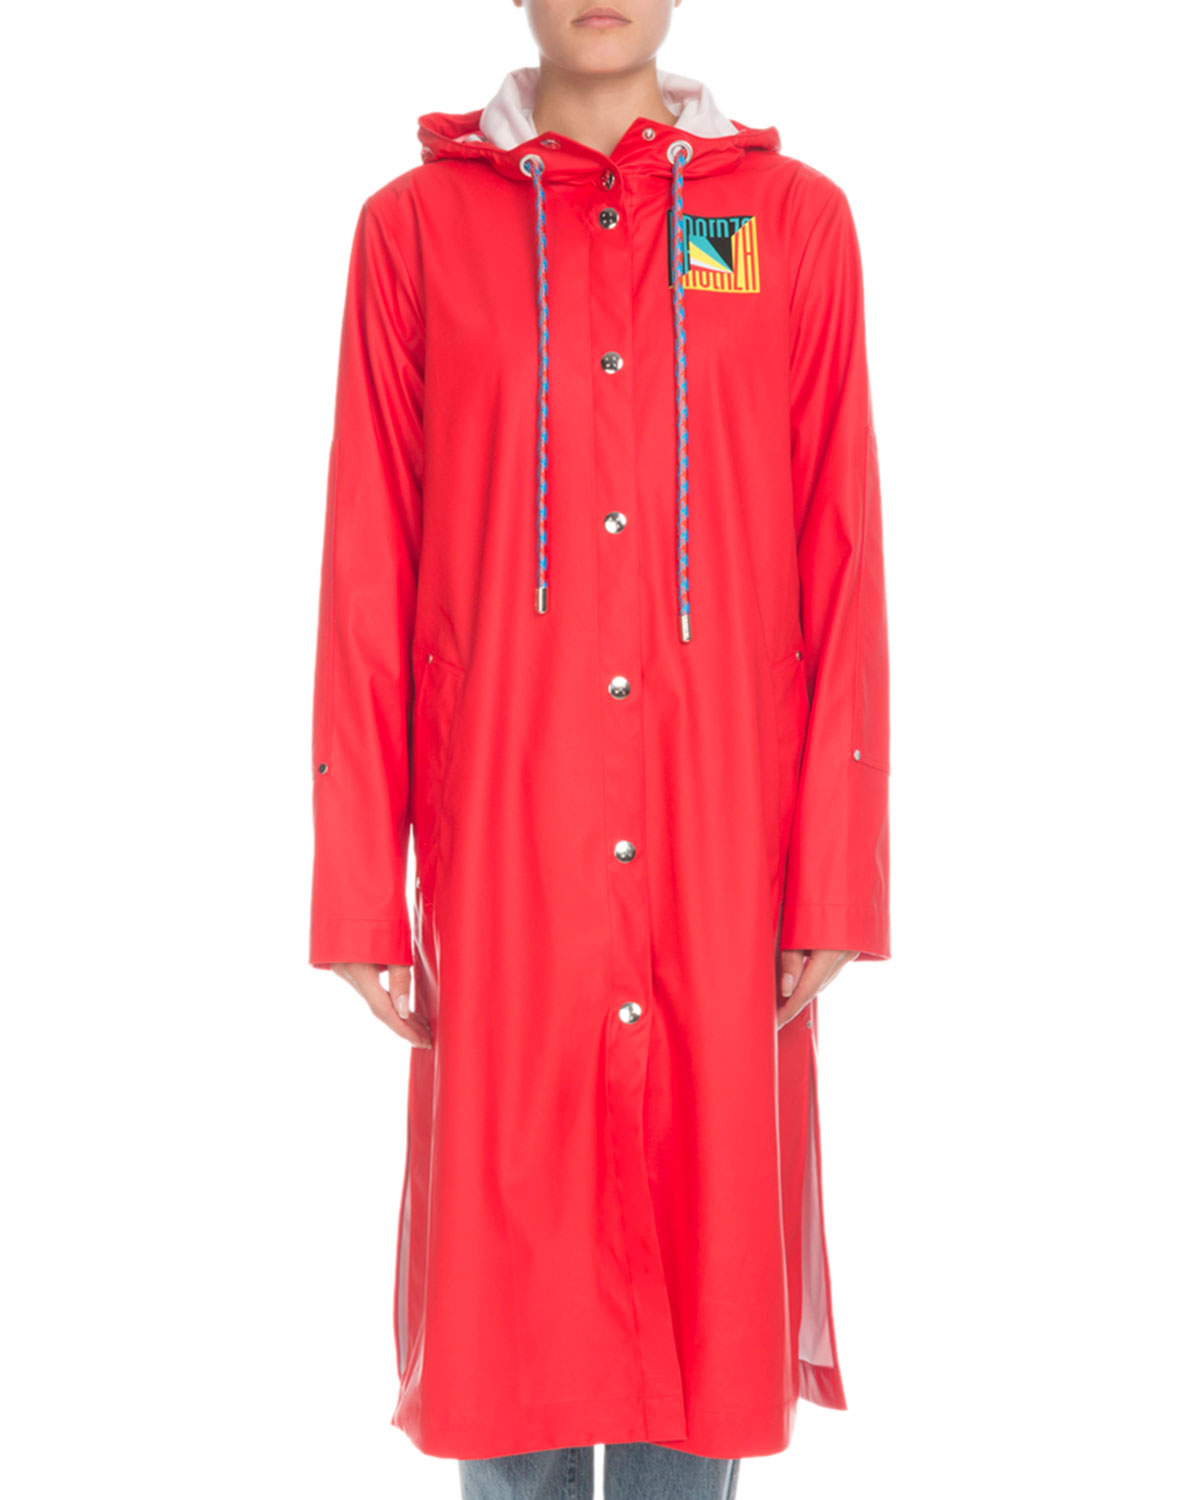 PSWL Hooded Snap-Front Long Raincoat in Red